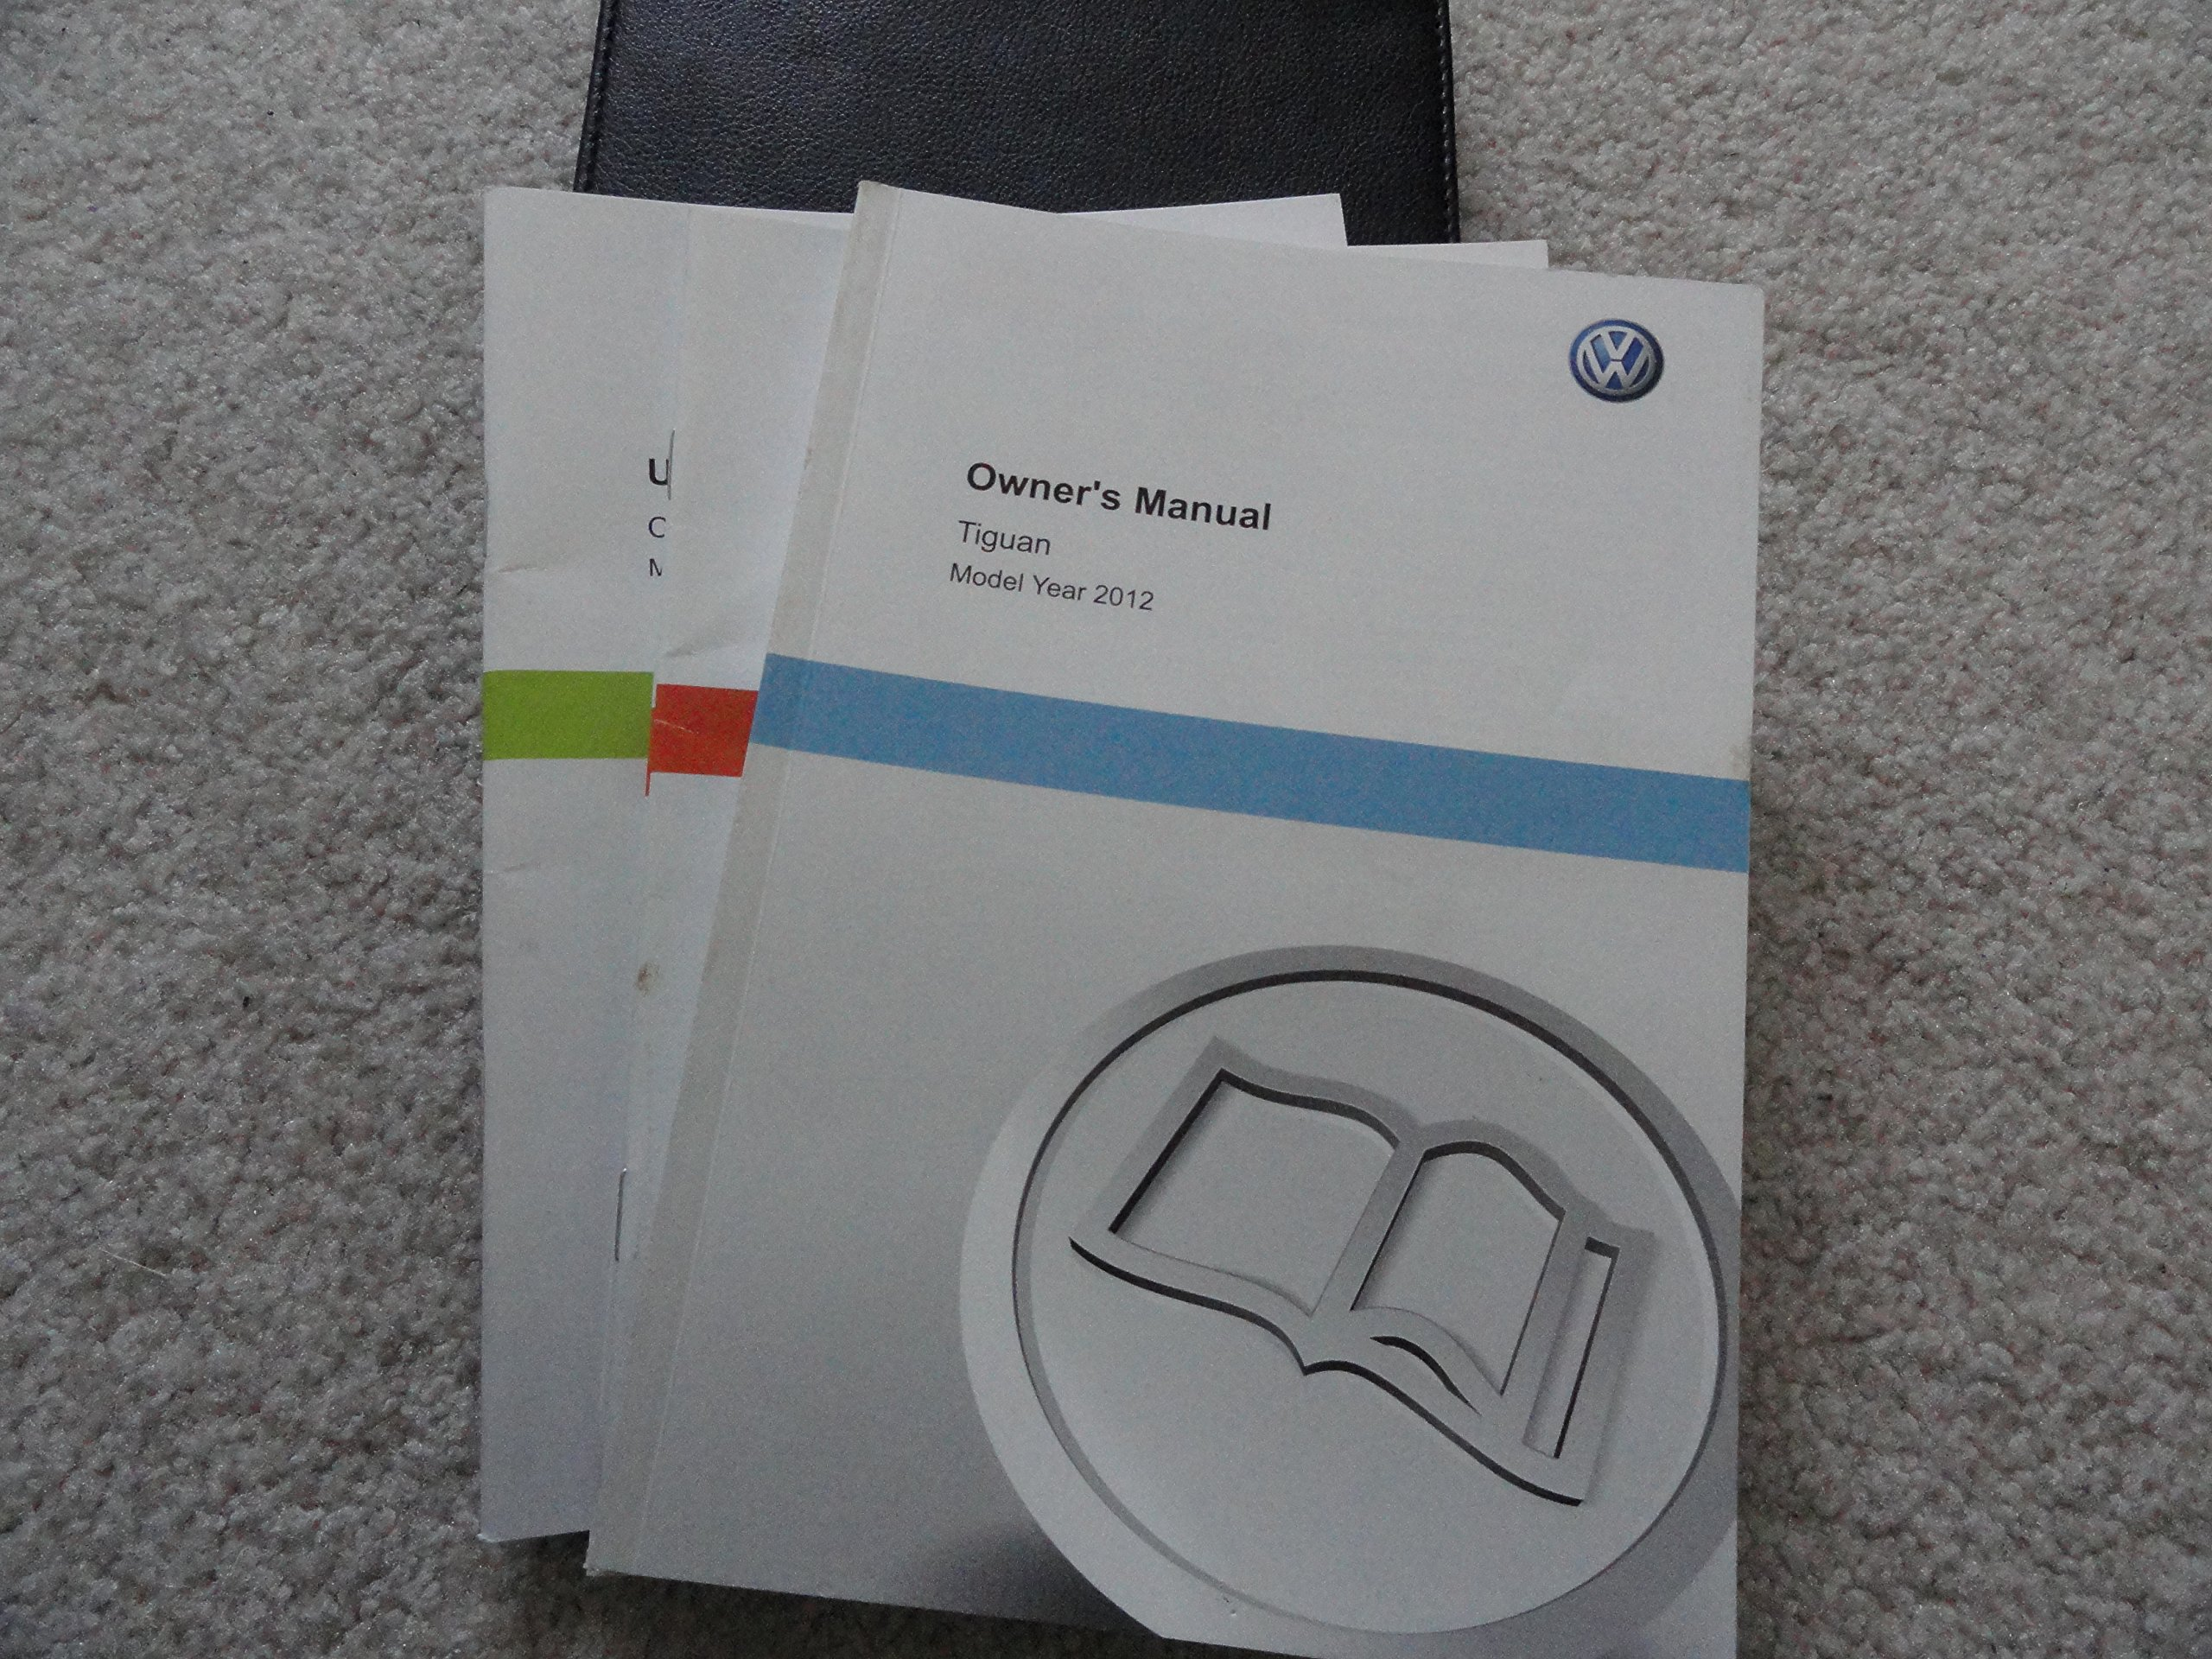 2012 volkswagen tiguan owners manual vw amazon com books rh amazon com VW Touran 2016 VW Tiguan